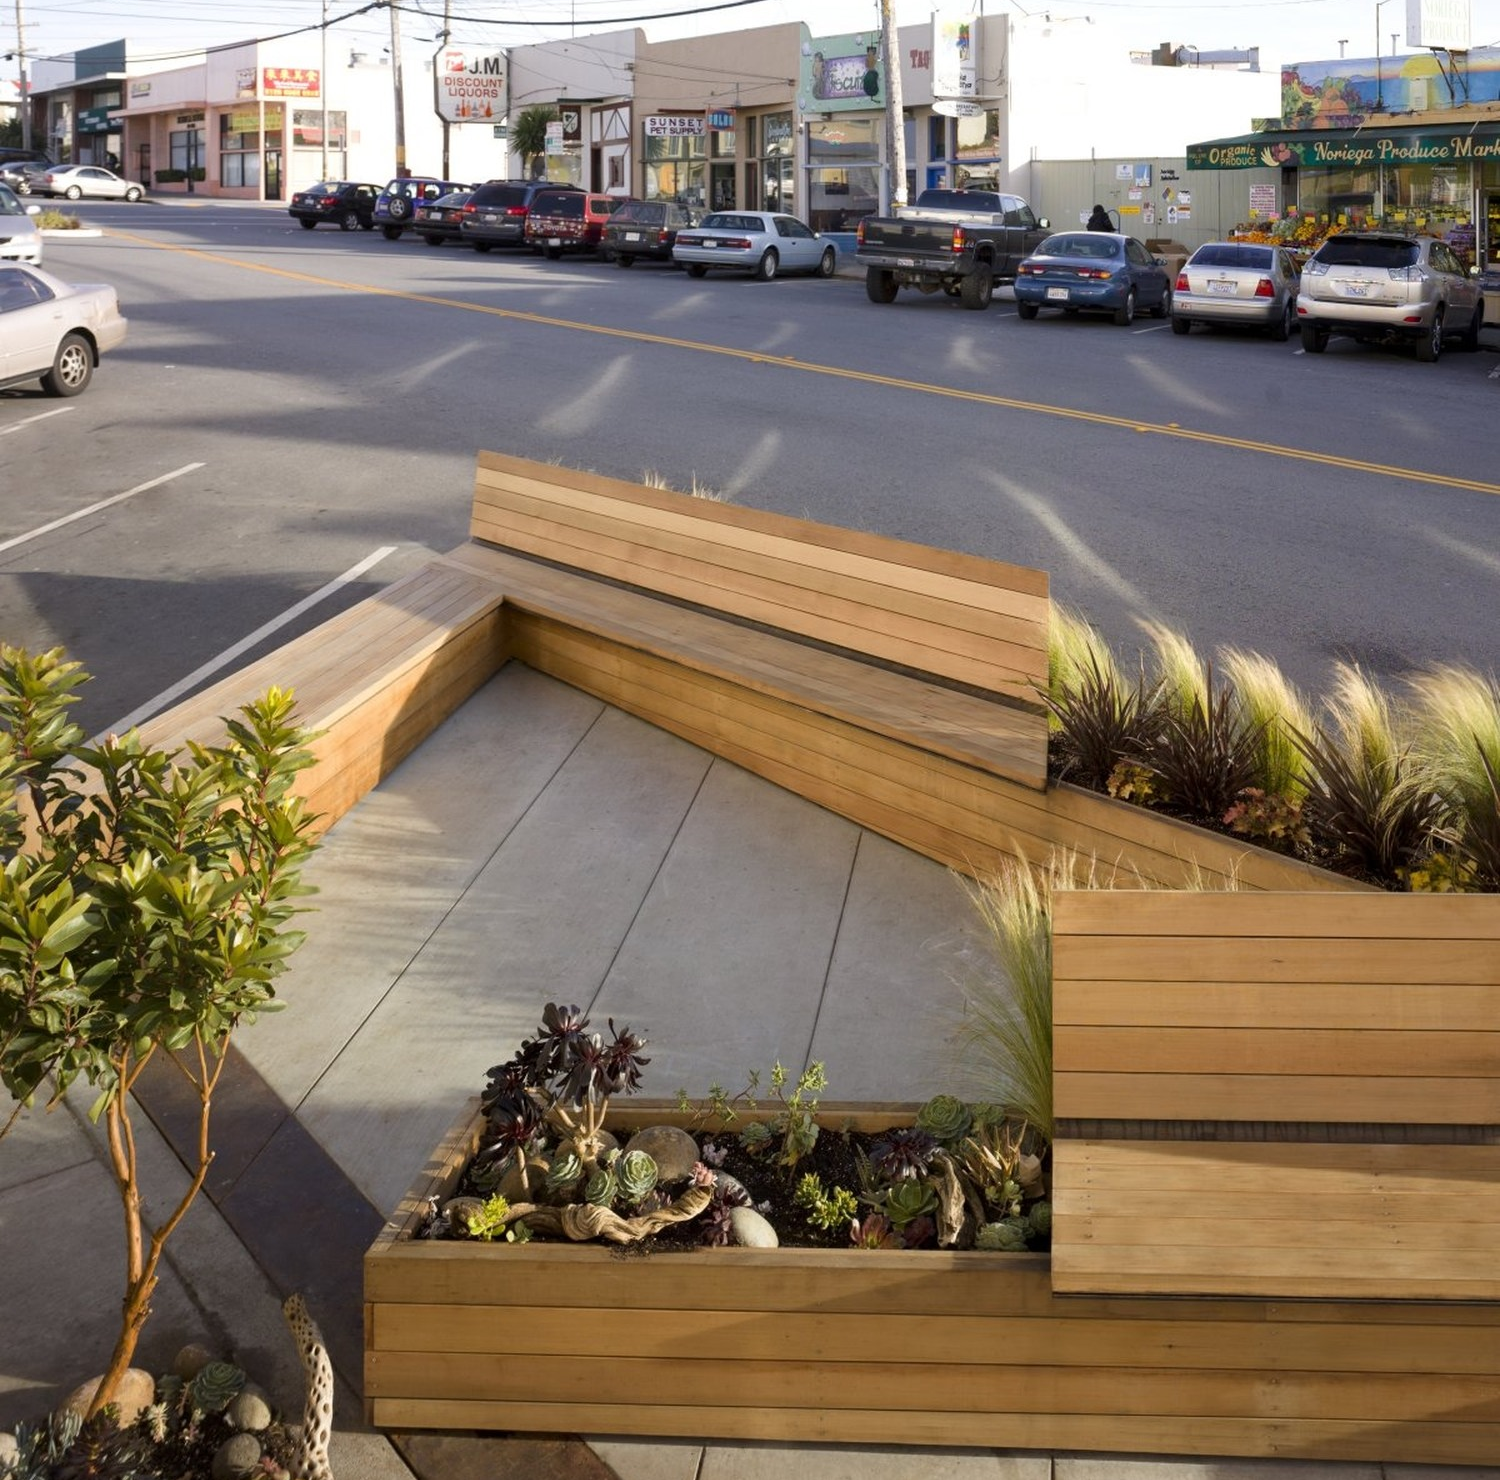 A parklet on Noriega Street between 45th and 46th Streets provides a fun outdoor meeting spot for neighbors.